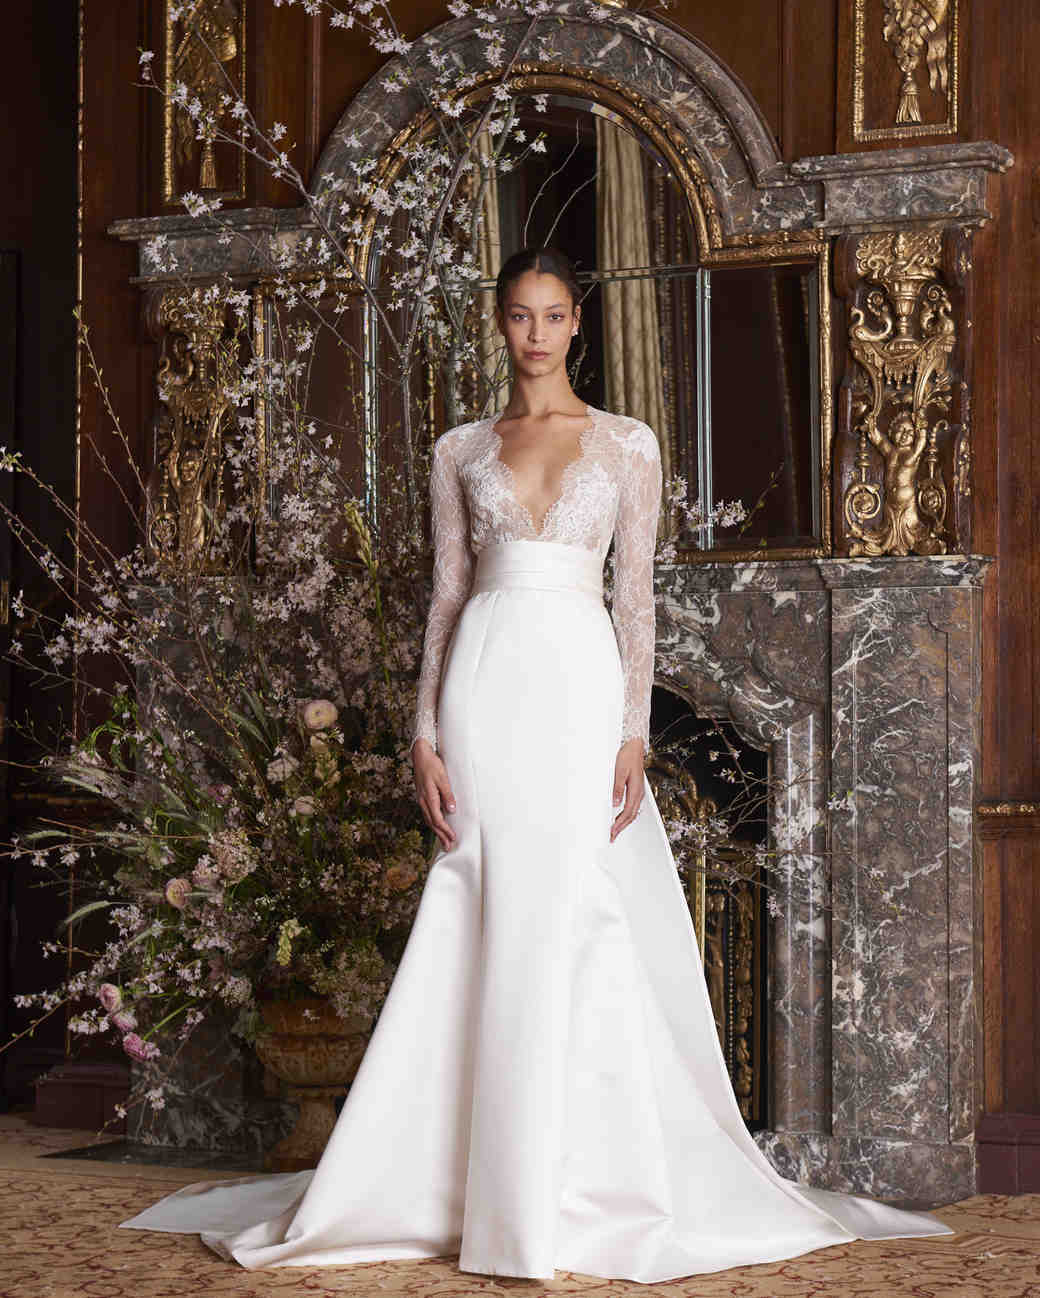 2019 Wedding Dresses With Sleeves: Monique Lhuillier Spring 2019 Wedding Dress Collection